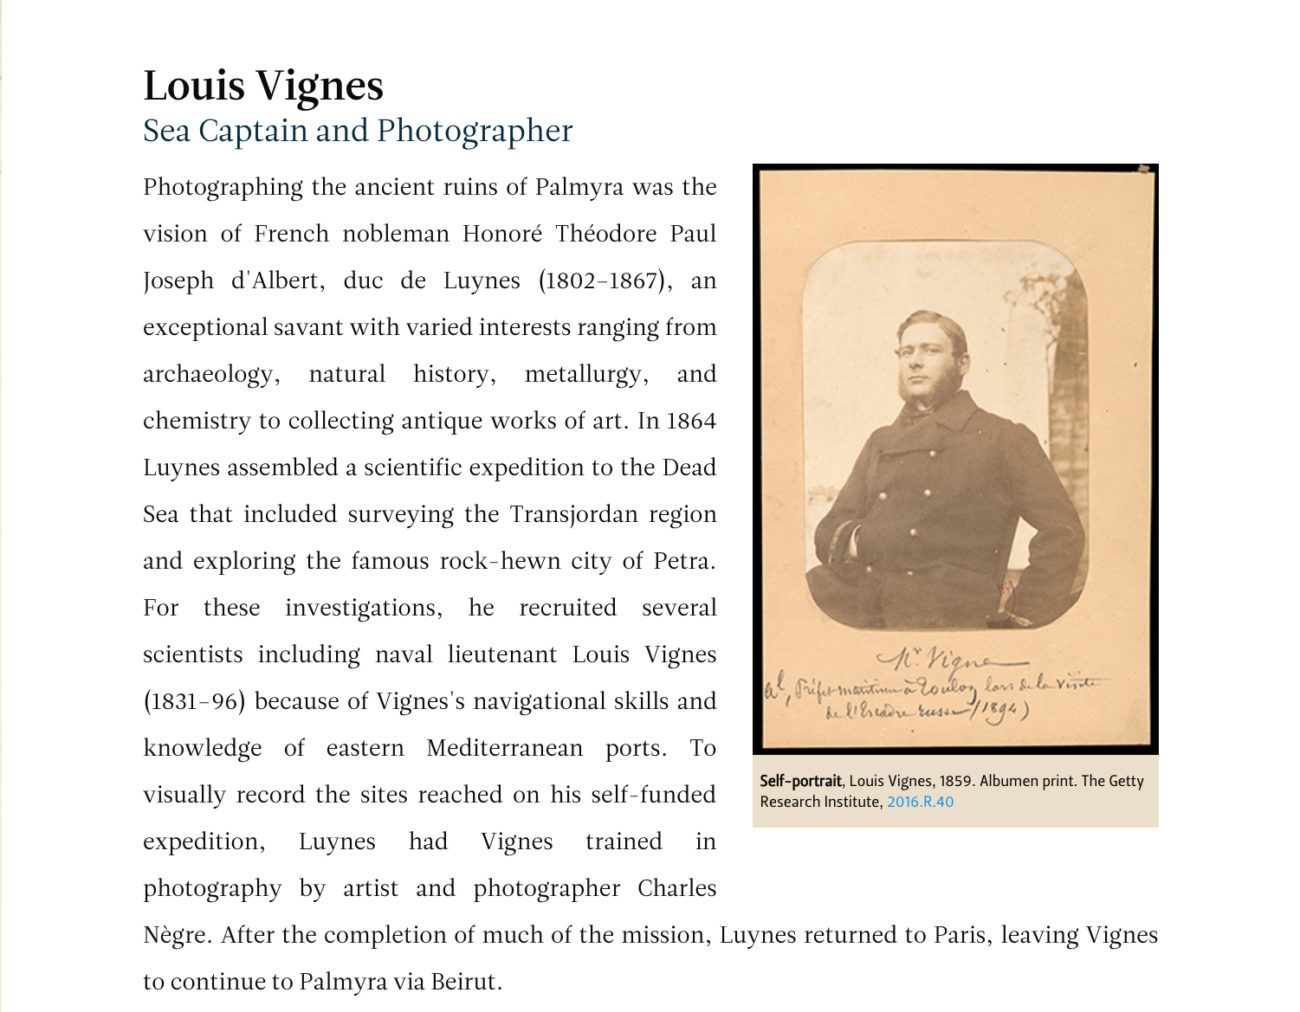 Sepia-toned image of a 19th-century man juxtaposed with website text about him